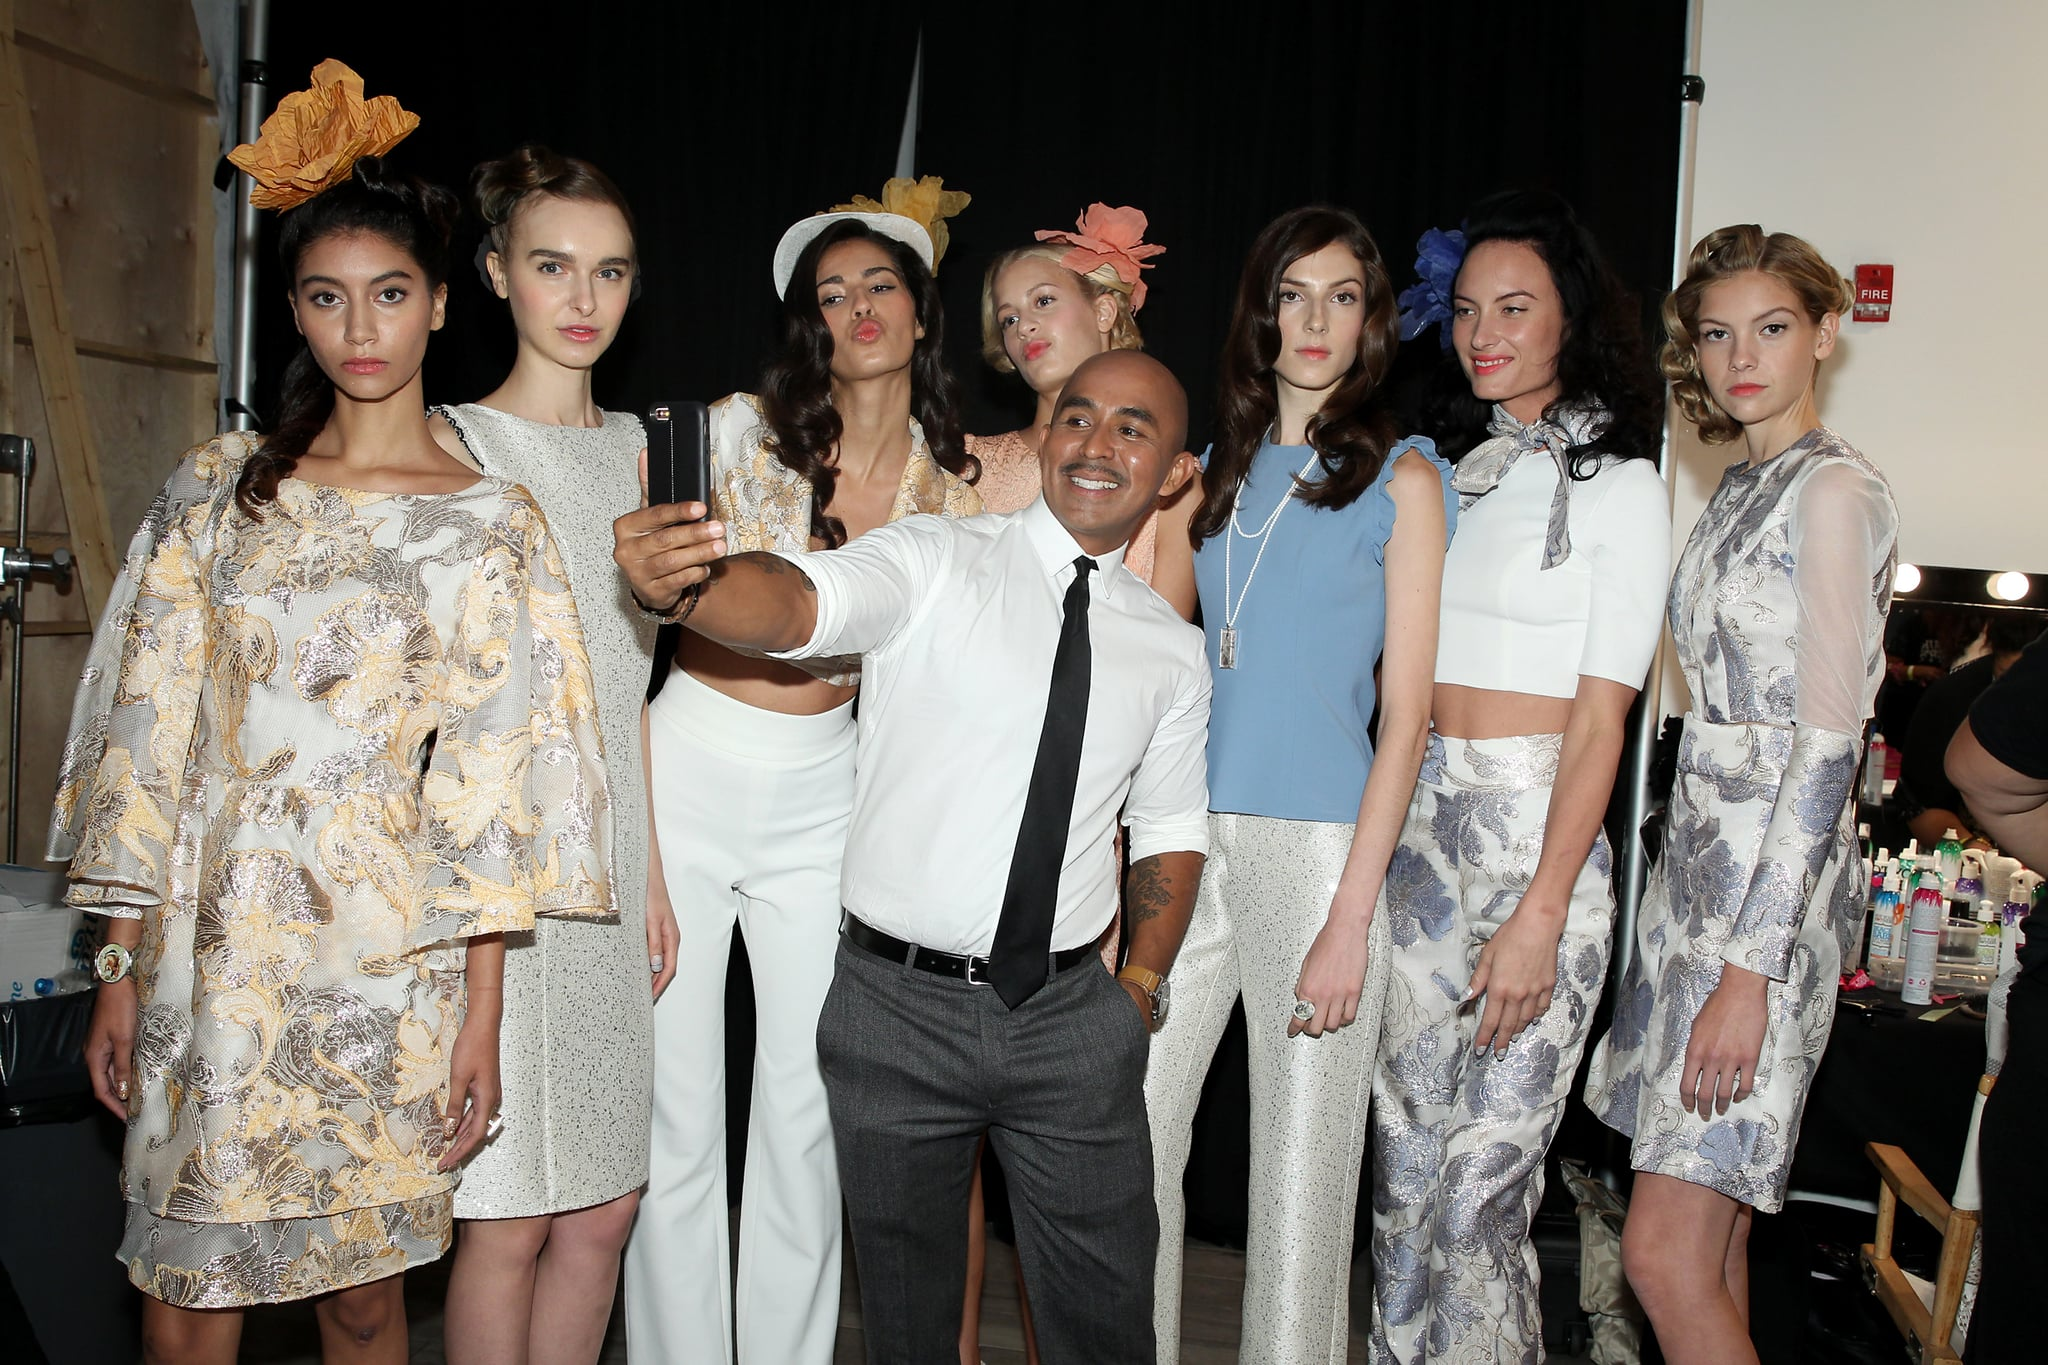 NEW YORK, NY - SEPTEMBER 13:  Raul Penaranda poses backstage with models at Kia STYLE360 Hosts Raul Penaranda Spring 2017 Momentum Fashion Show on September 13, 2016 in New York City.  (Photo by Thomas Concordia/WireImage Style360)